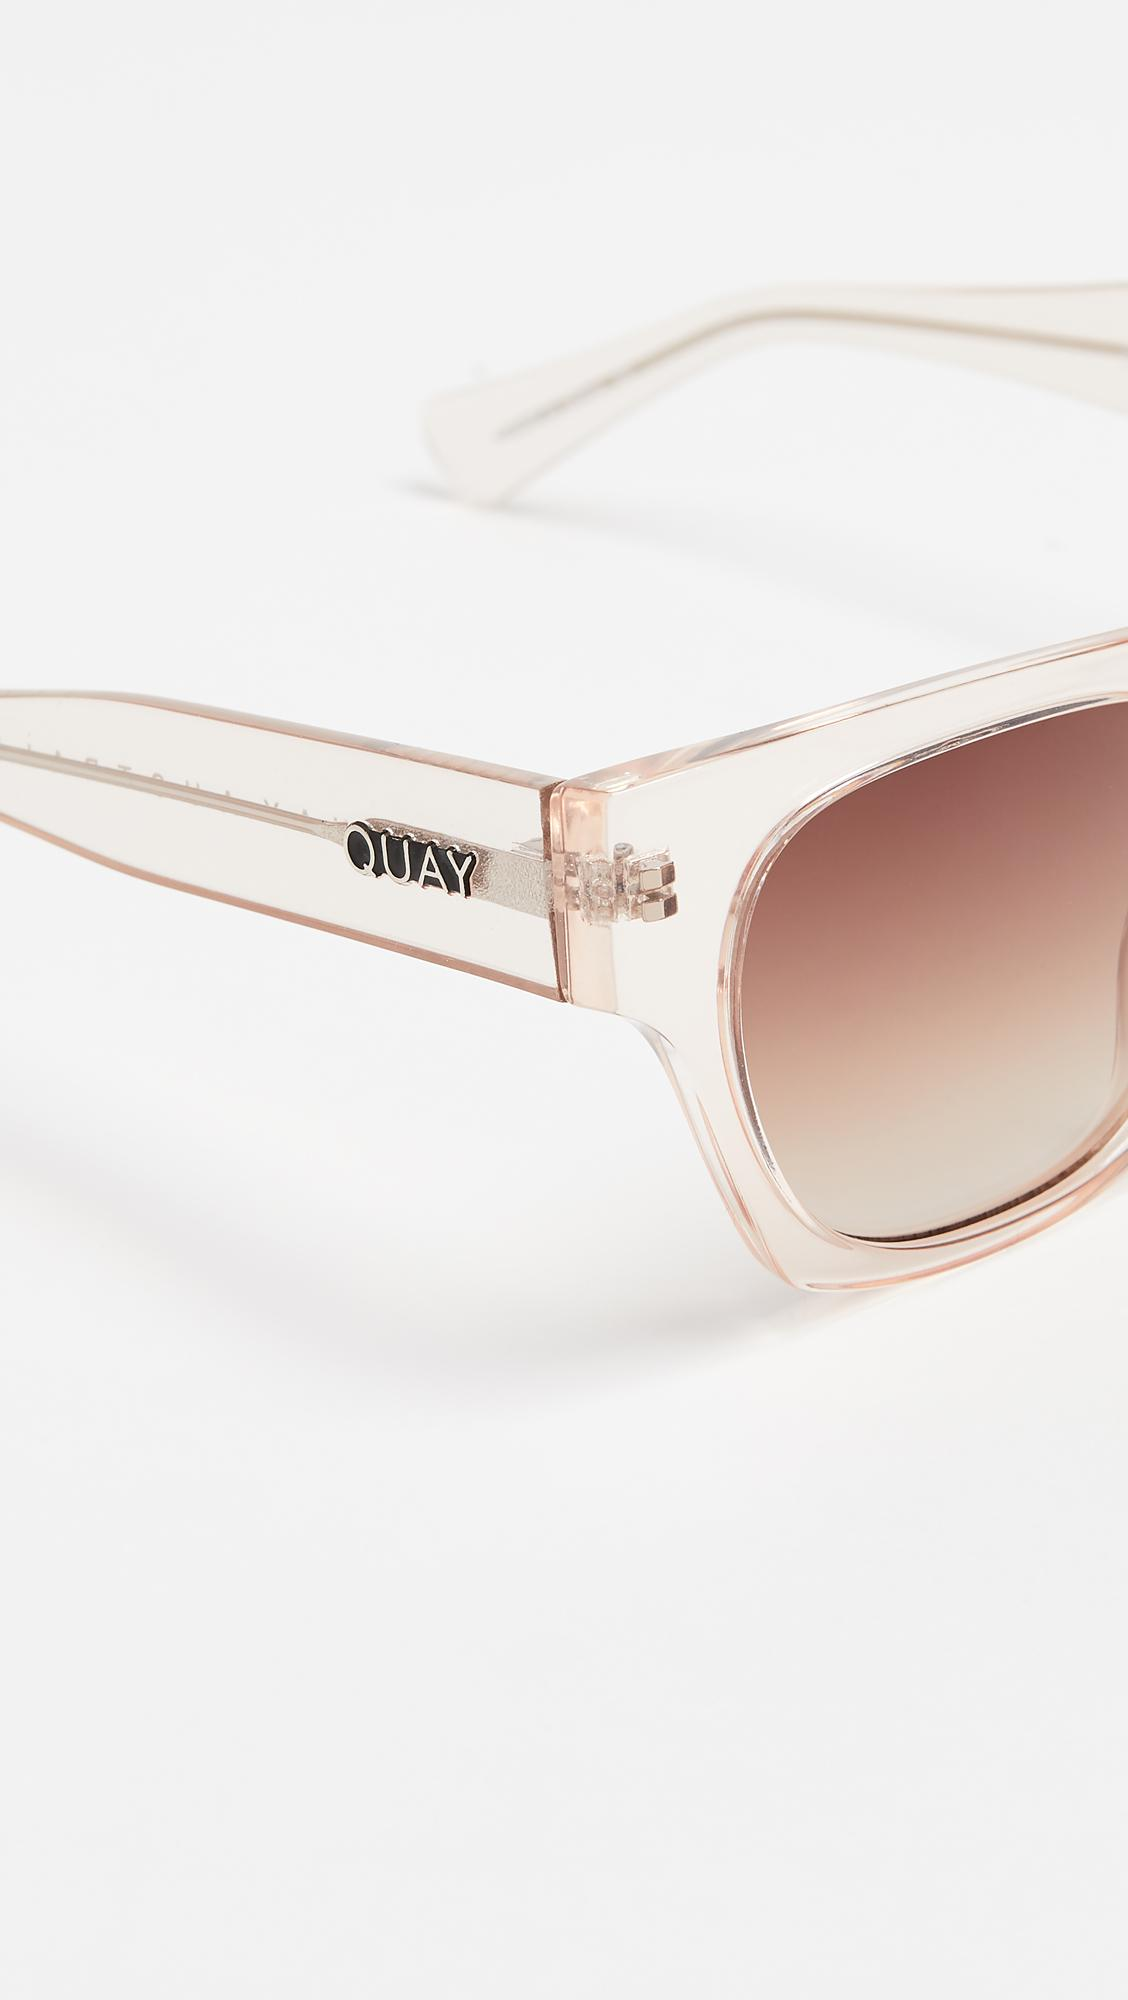 Quay Something Extra Sunglasses in Champagne/Brown (Brown)